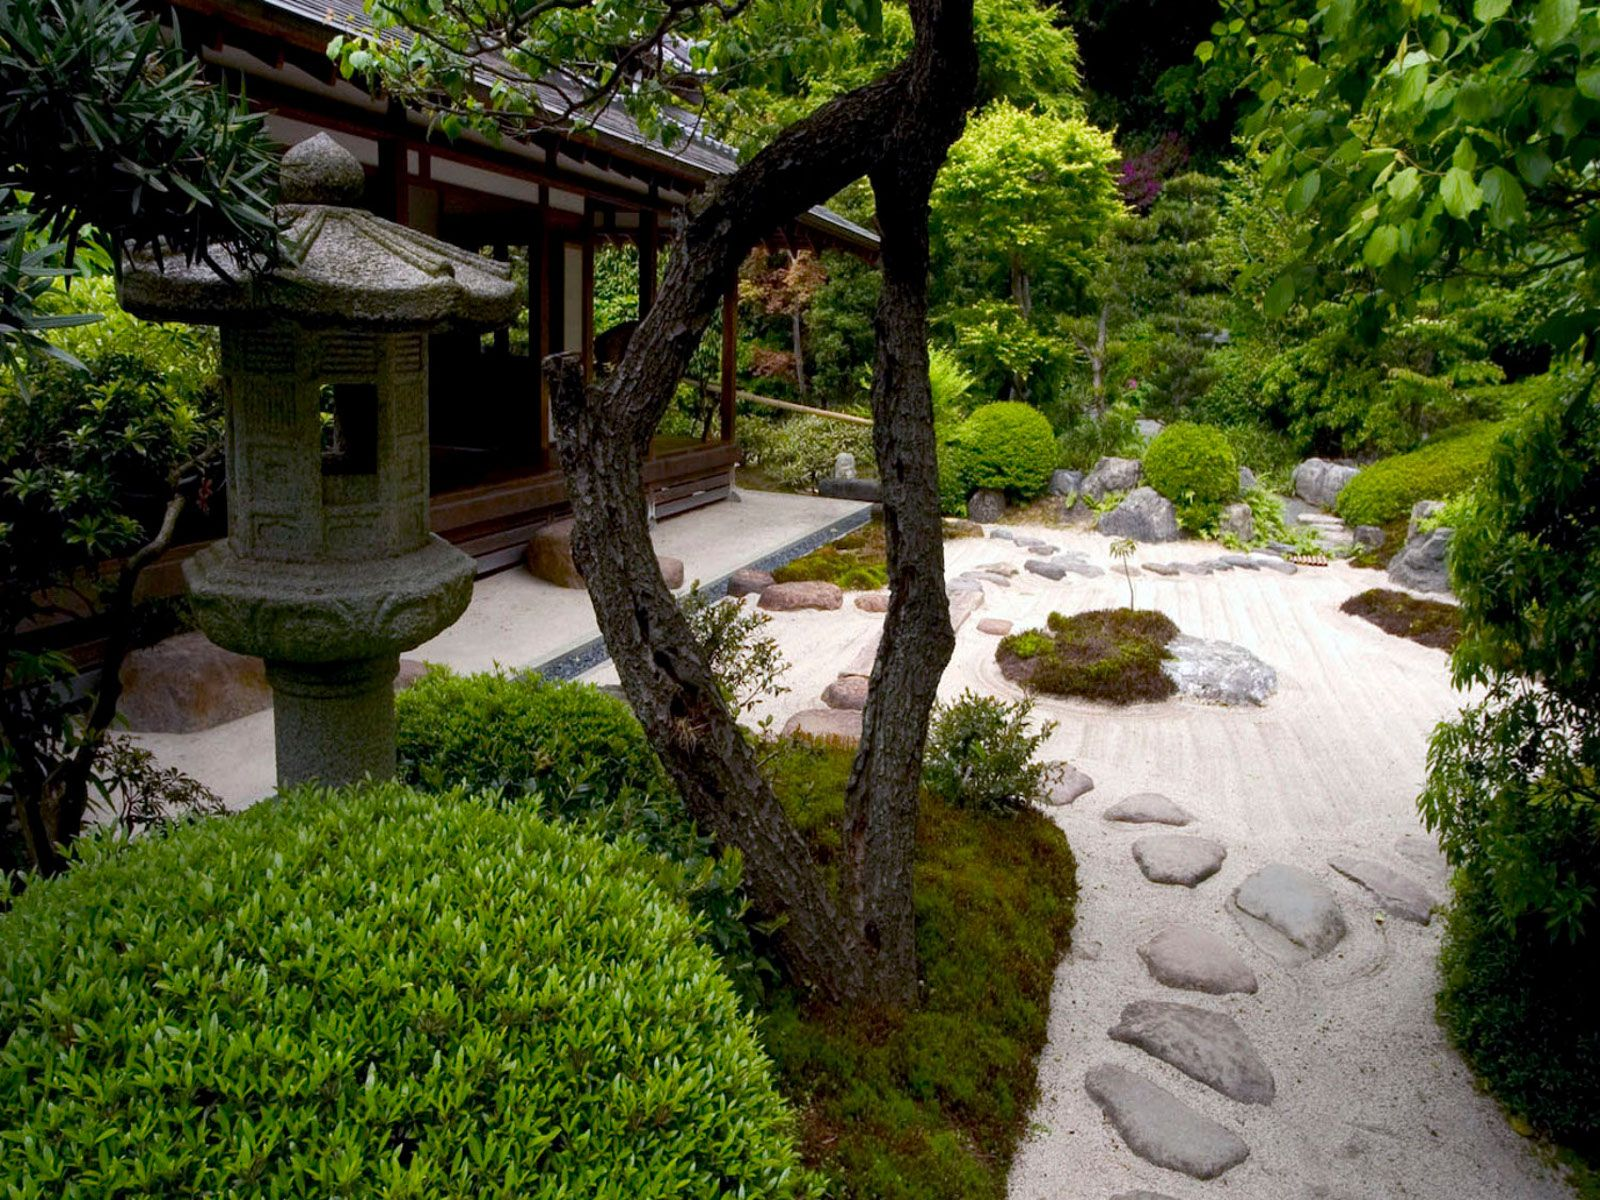 Zen garden 1600 x 1200 desktop wallpaper every wednesday zen